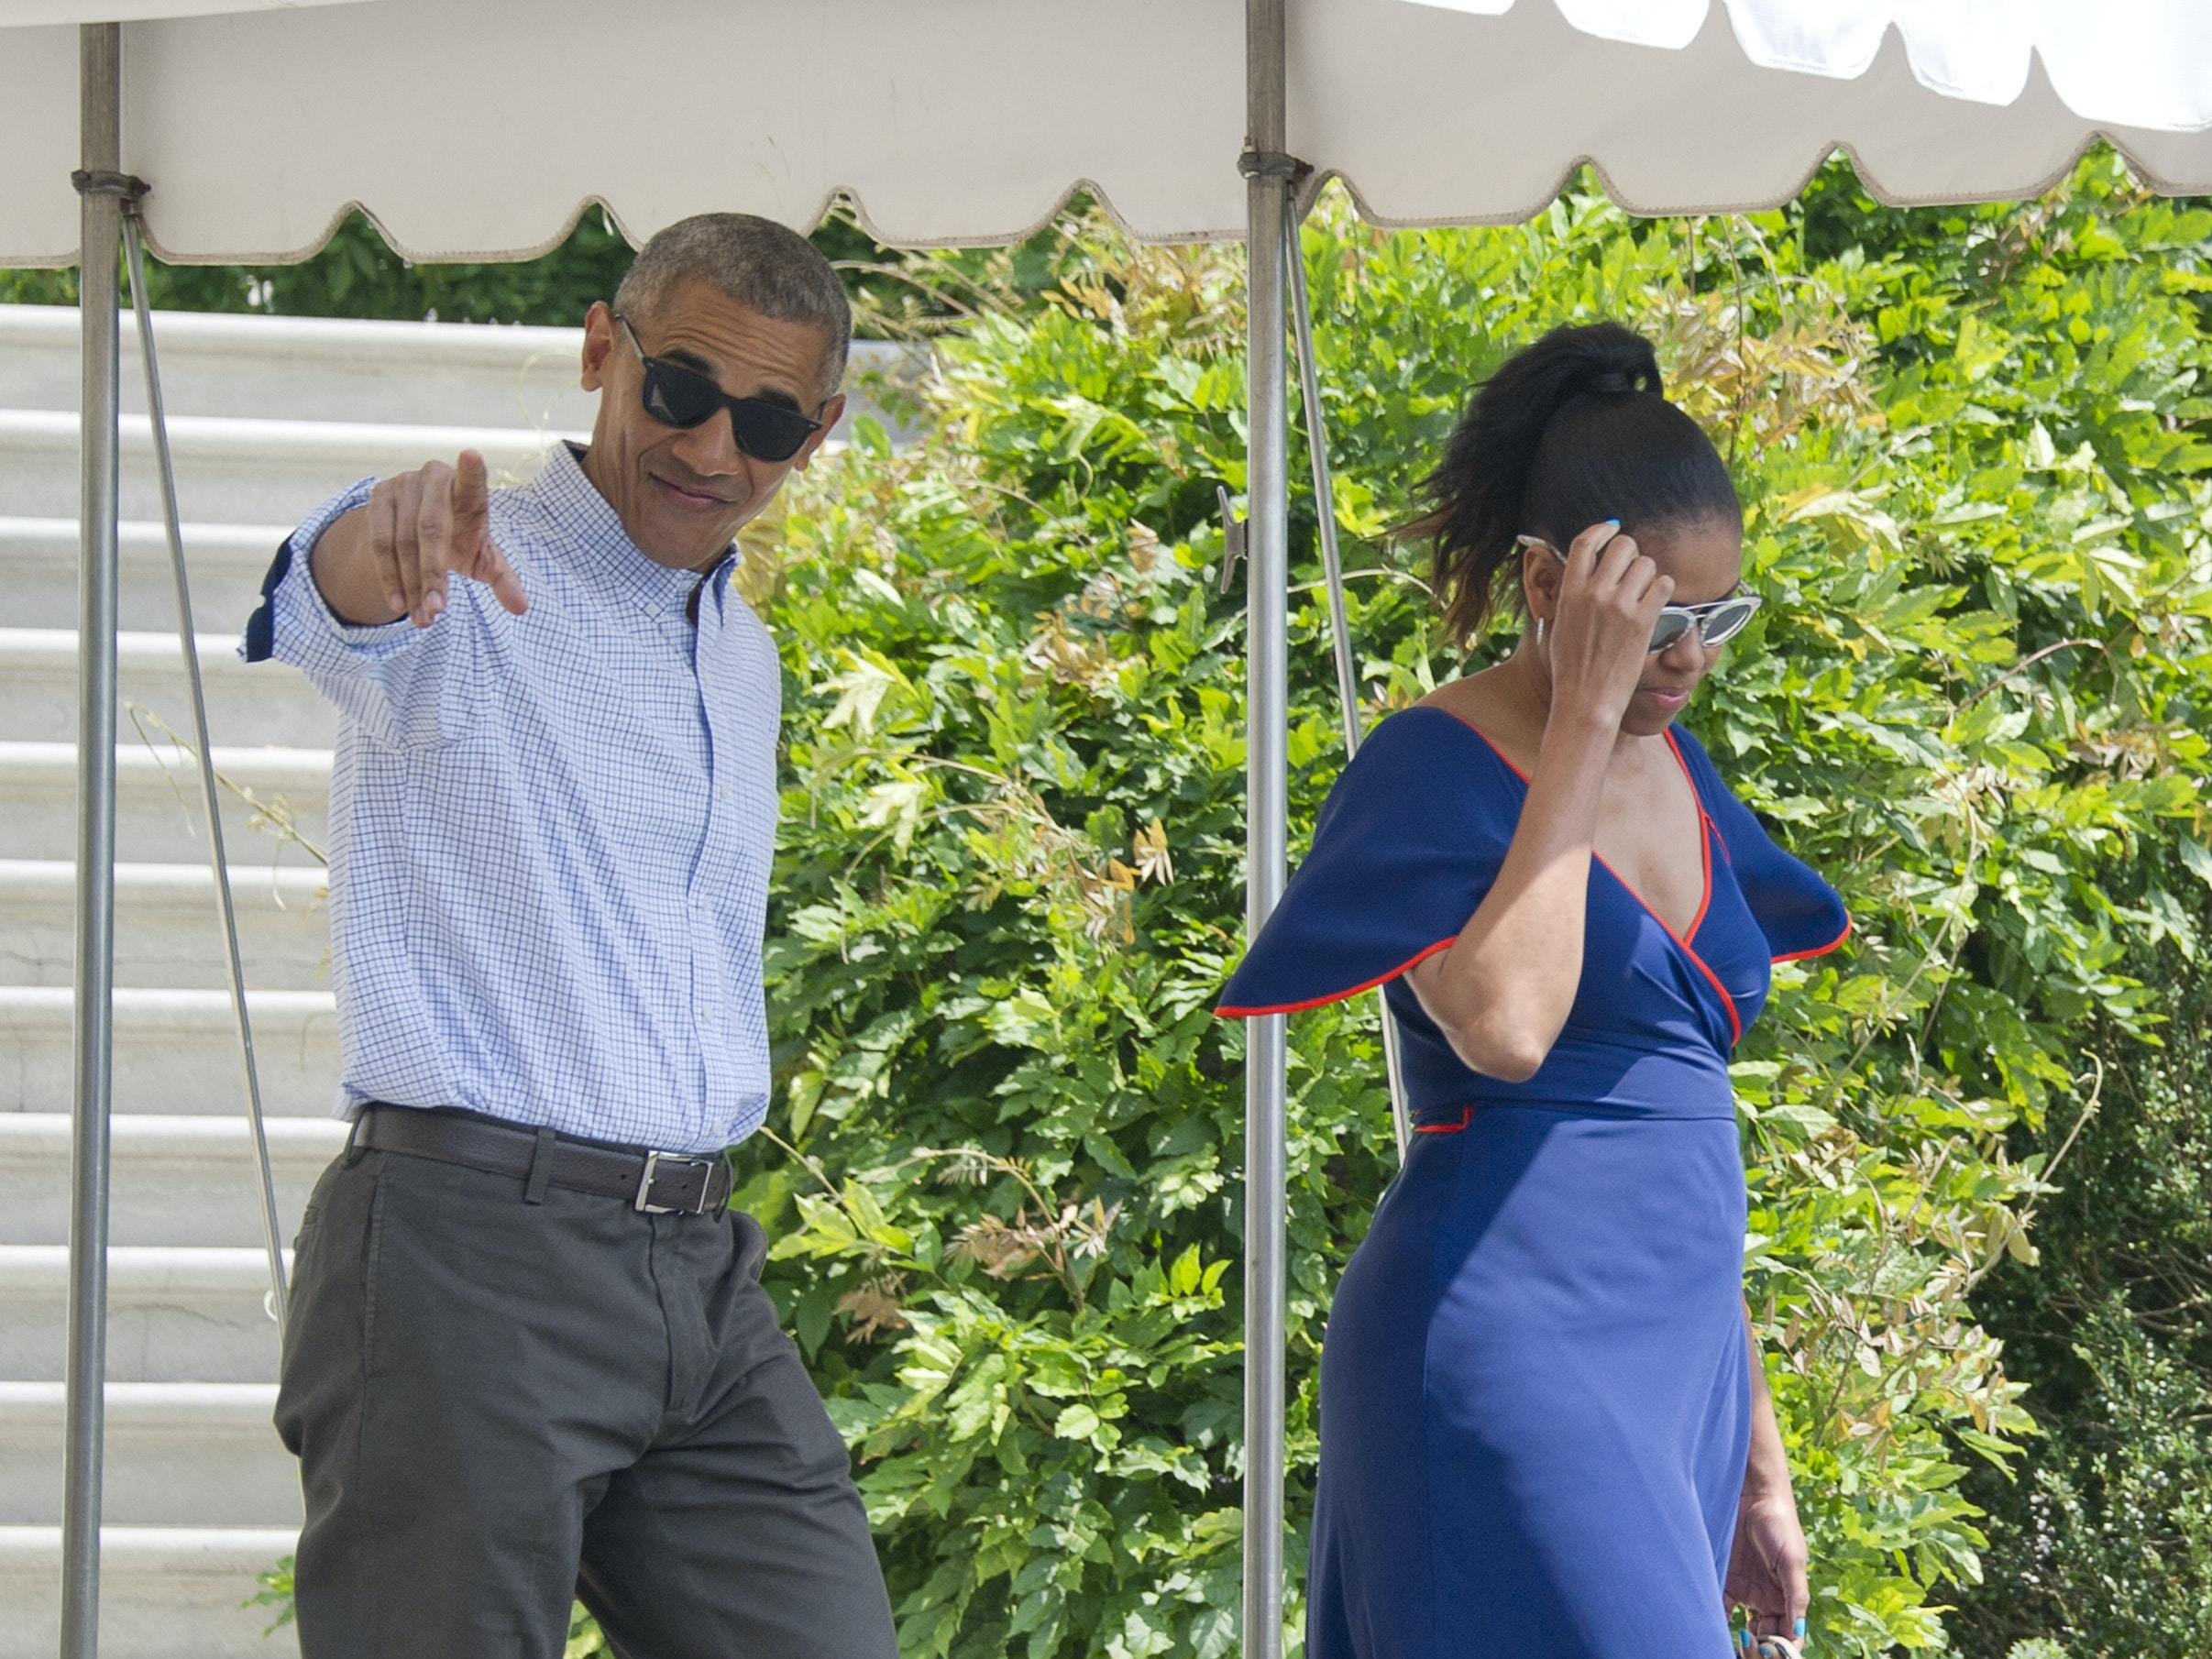 WASHINGTON, DC - AUGUST 6:  (AFP OUT) U.S. President Barack Obama points towards the assembled press as he and first lady Michelle Obama depart the White House August 6, 2016 in Washington, DC. The family is traveling to travel to Marthas Vineyard, Massachusetts for their annual two week vacation.  (Photo by Ron Sachs-Pool/Getty Images)